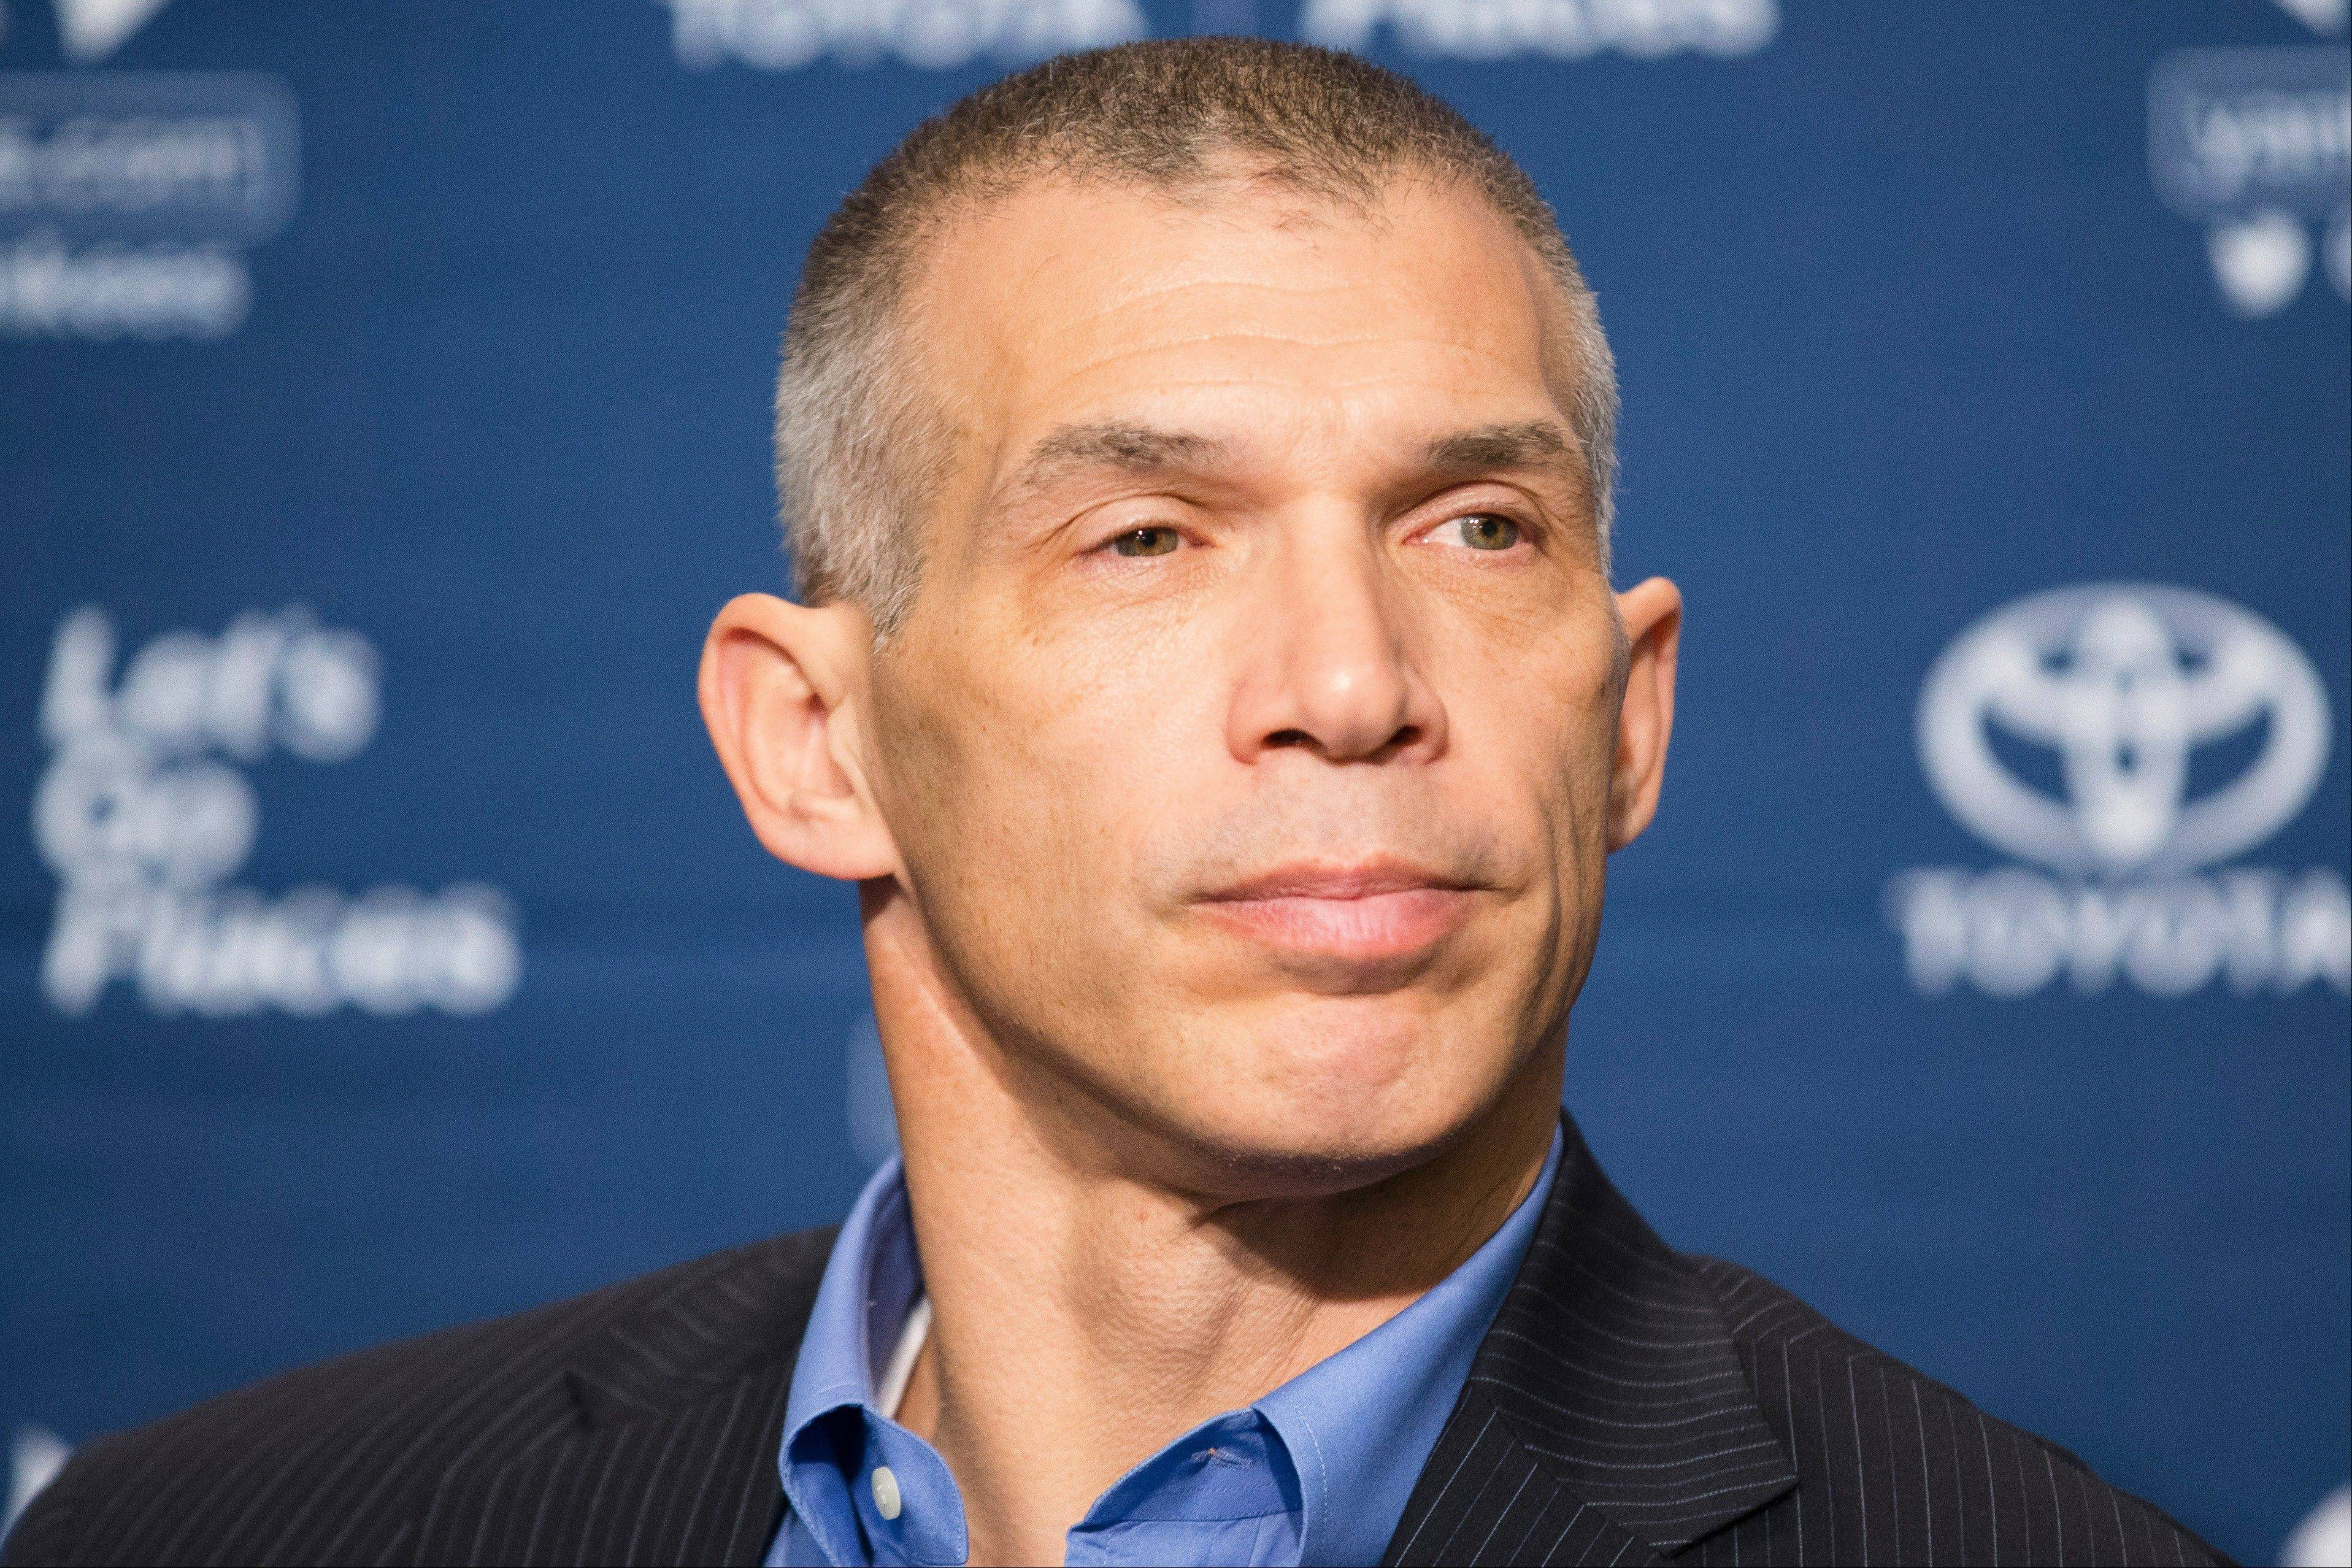 New York Yankees manager Joe Girardi is a man of faith and commitment, and he gives all credit for that to his parents.